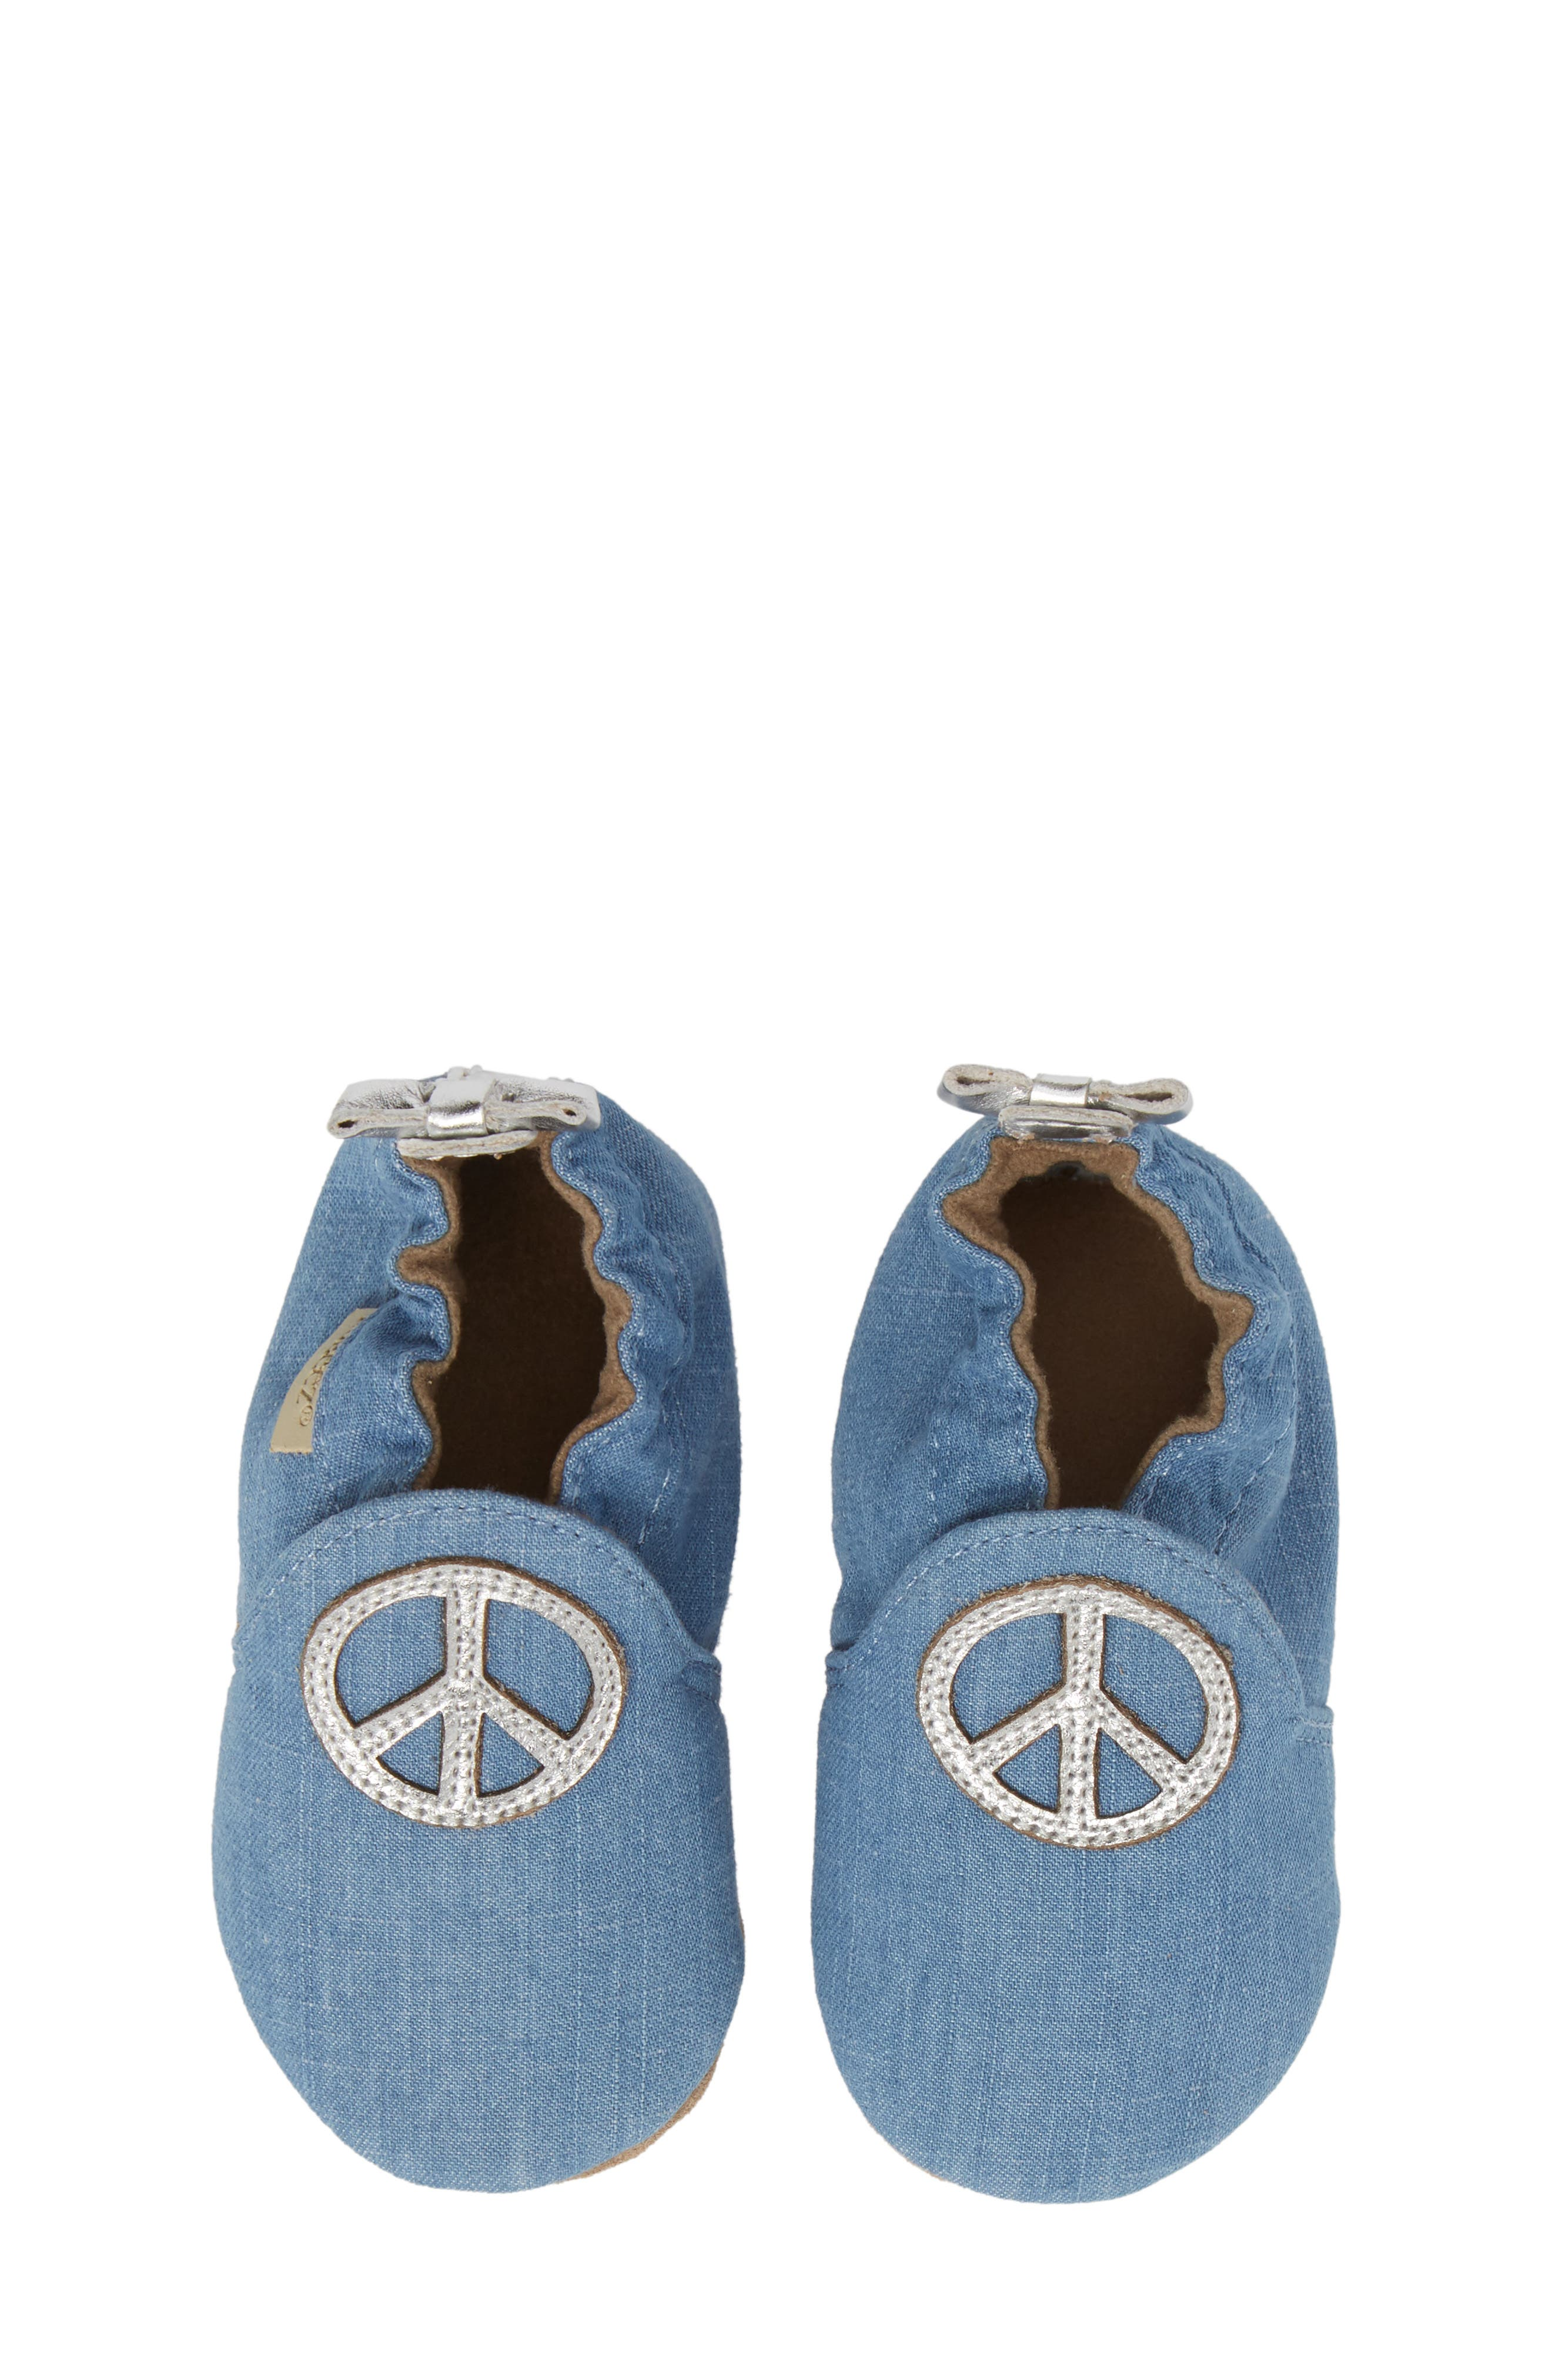 Peace Out Moccasin Crib Shoe,                             Alternate thumbnail 5, color,                             BLUE